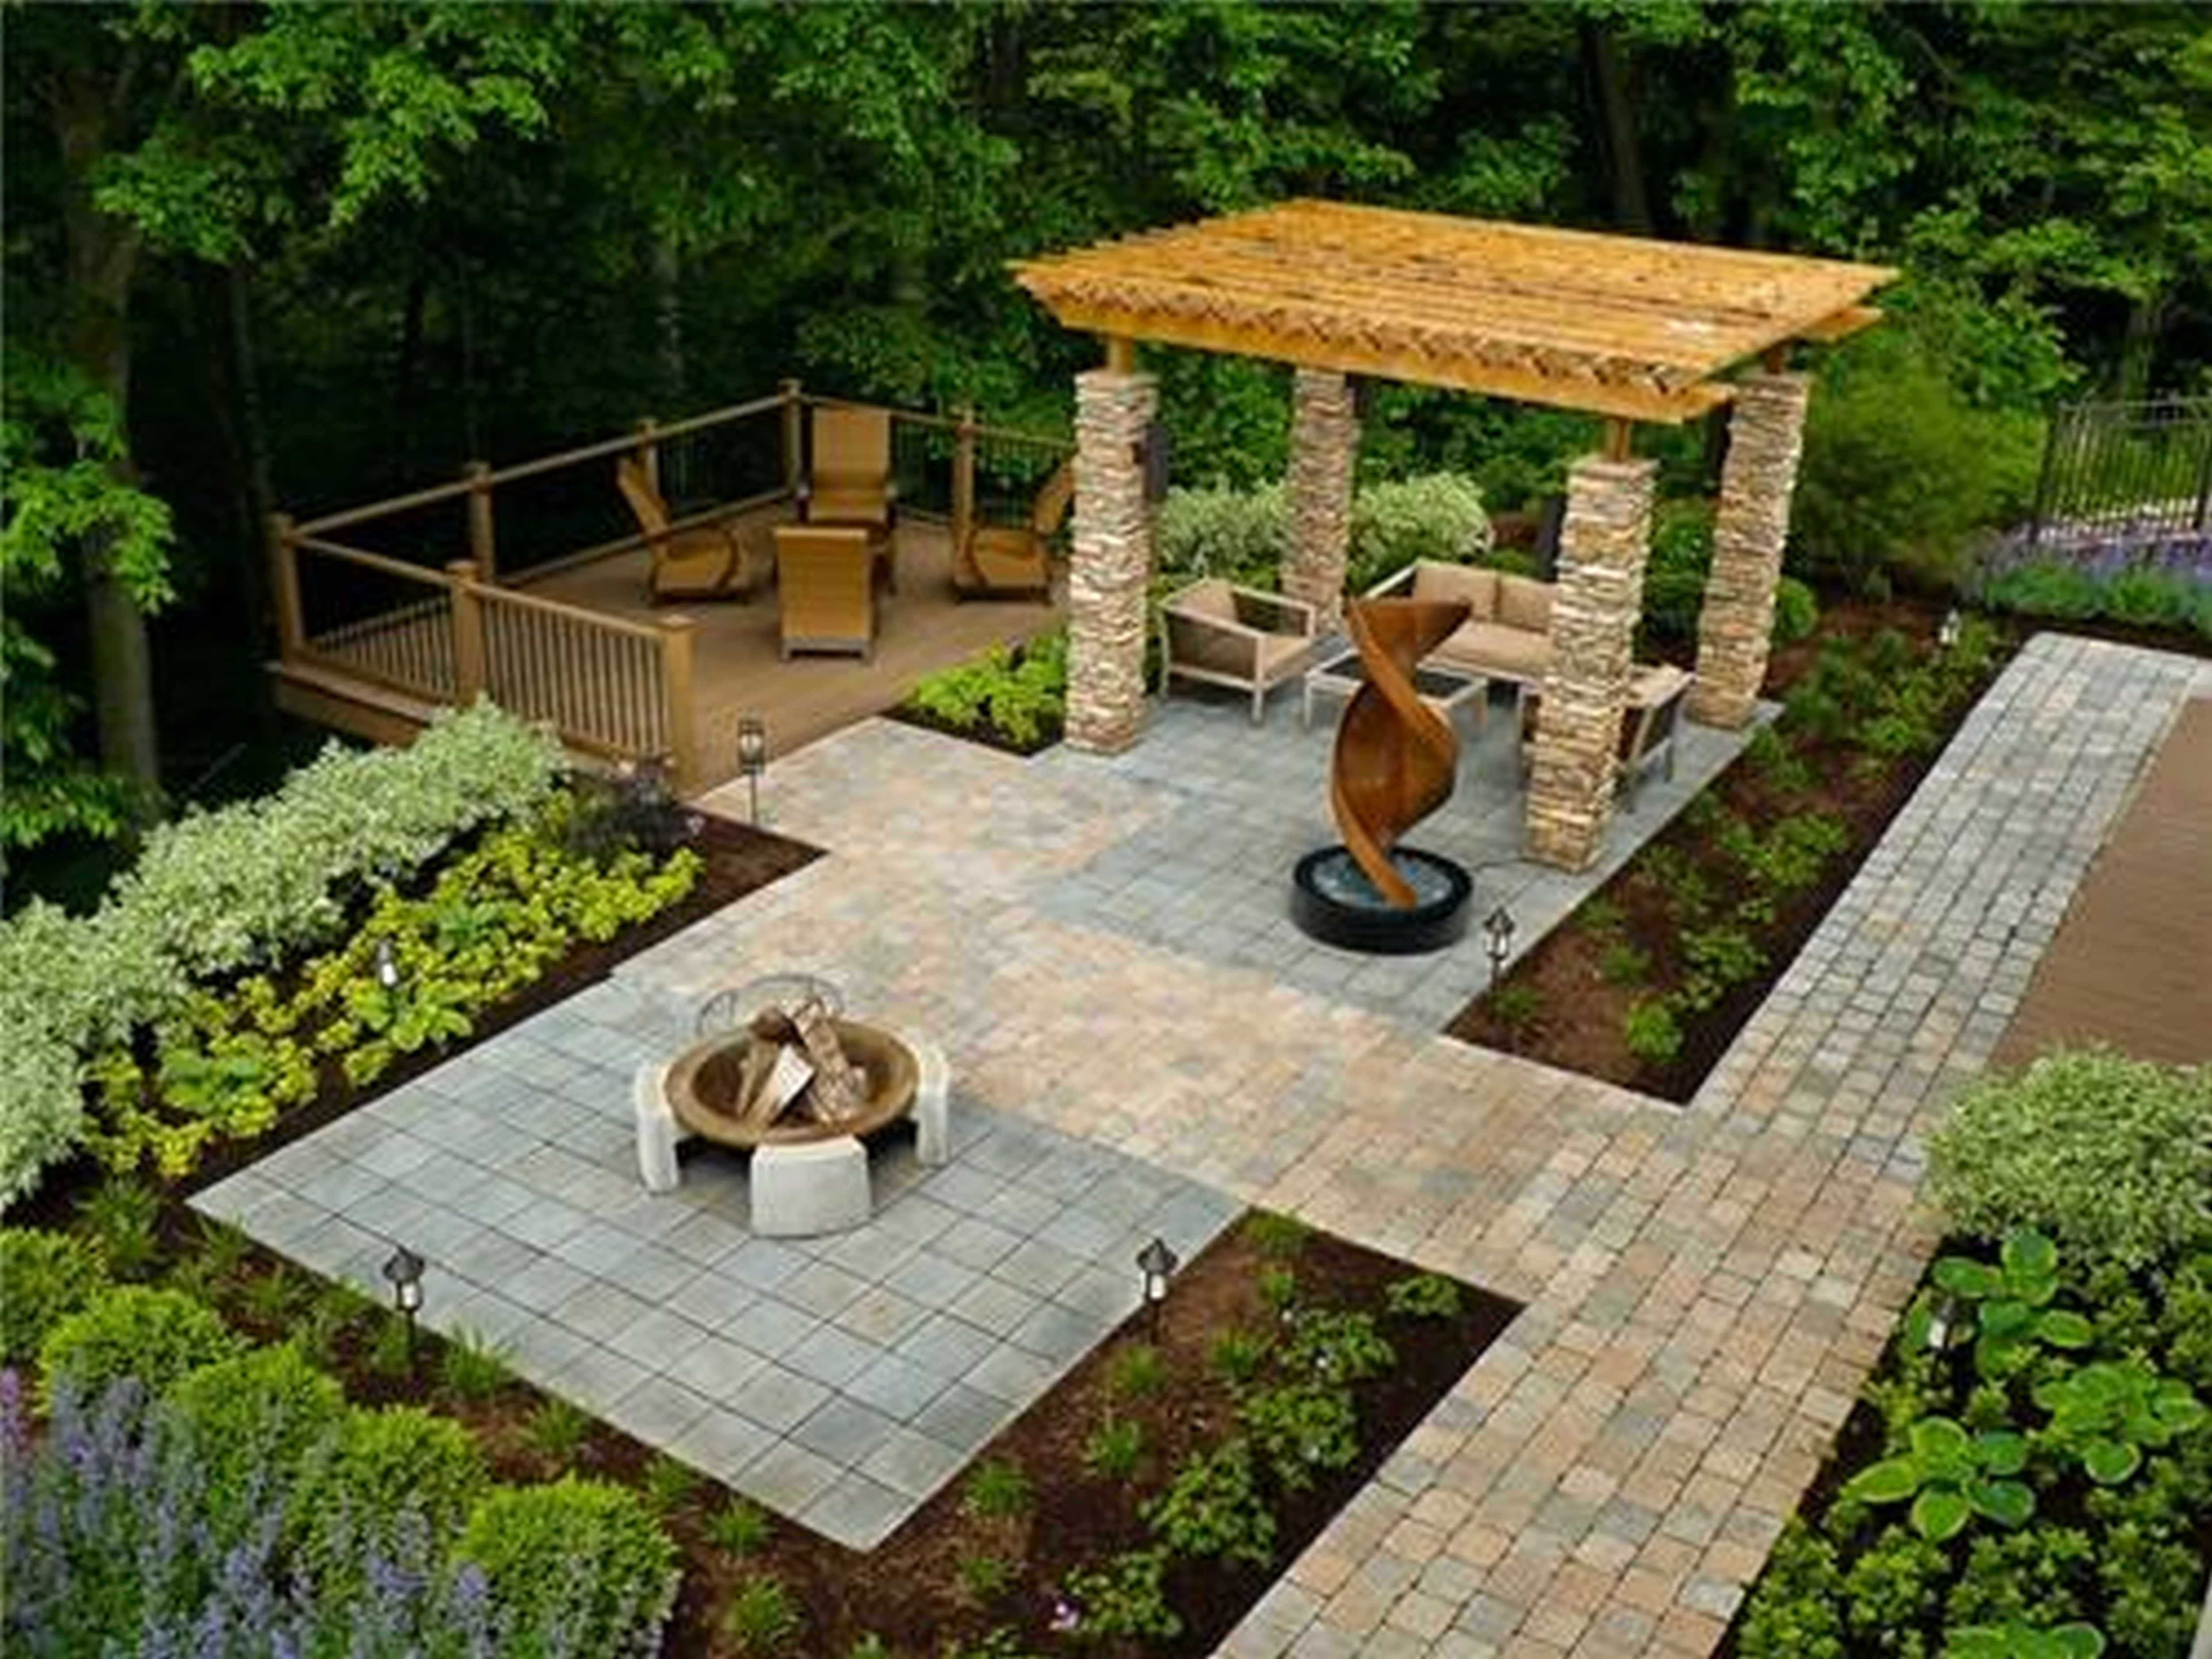 15 Awesome Ideas How to Improve Cheap Ideas For Backyard ...